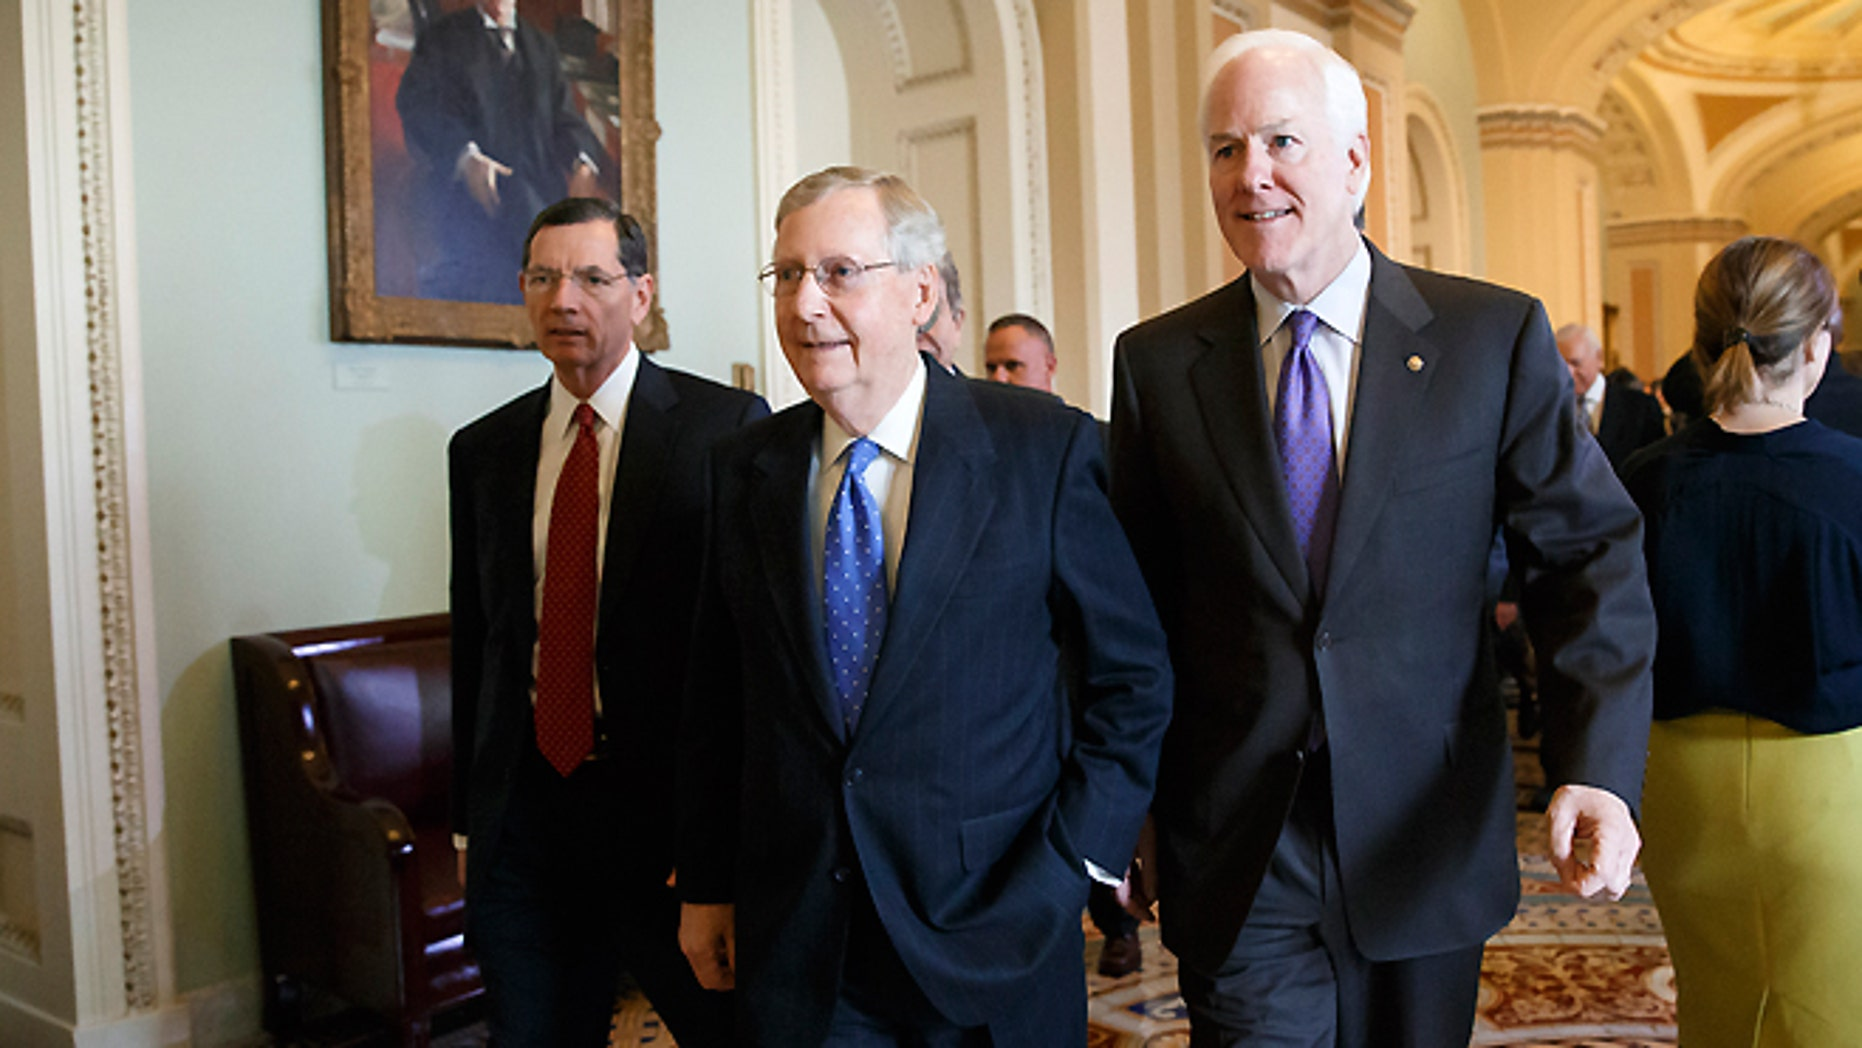 FILE -- Nov. 13, 2014: Senate Minority Leader Mitch McConnell of Ky., flanked by Sen. John Barrasso, R-Wyo., left, and Senate Minority Whip John Cornyn of Texas, emerges from a closed-door meeting on Capitol Hill in Washington, where he was chosen by acclamation of the GOP rank-and-file to be the new Senate majority leader when the new Congress convenes in January.